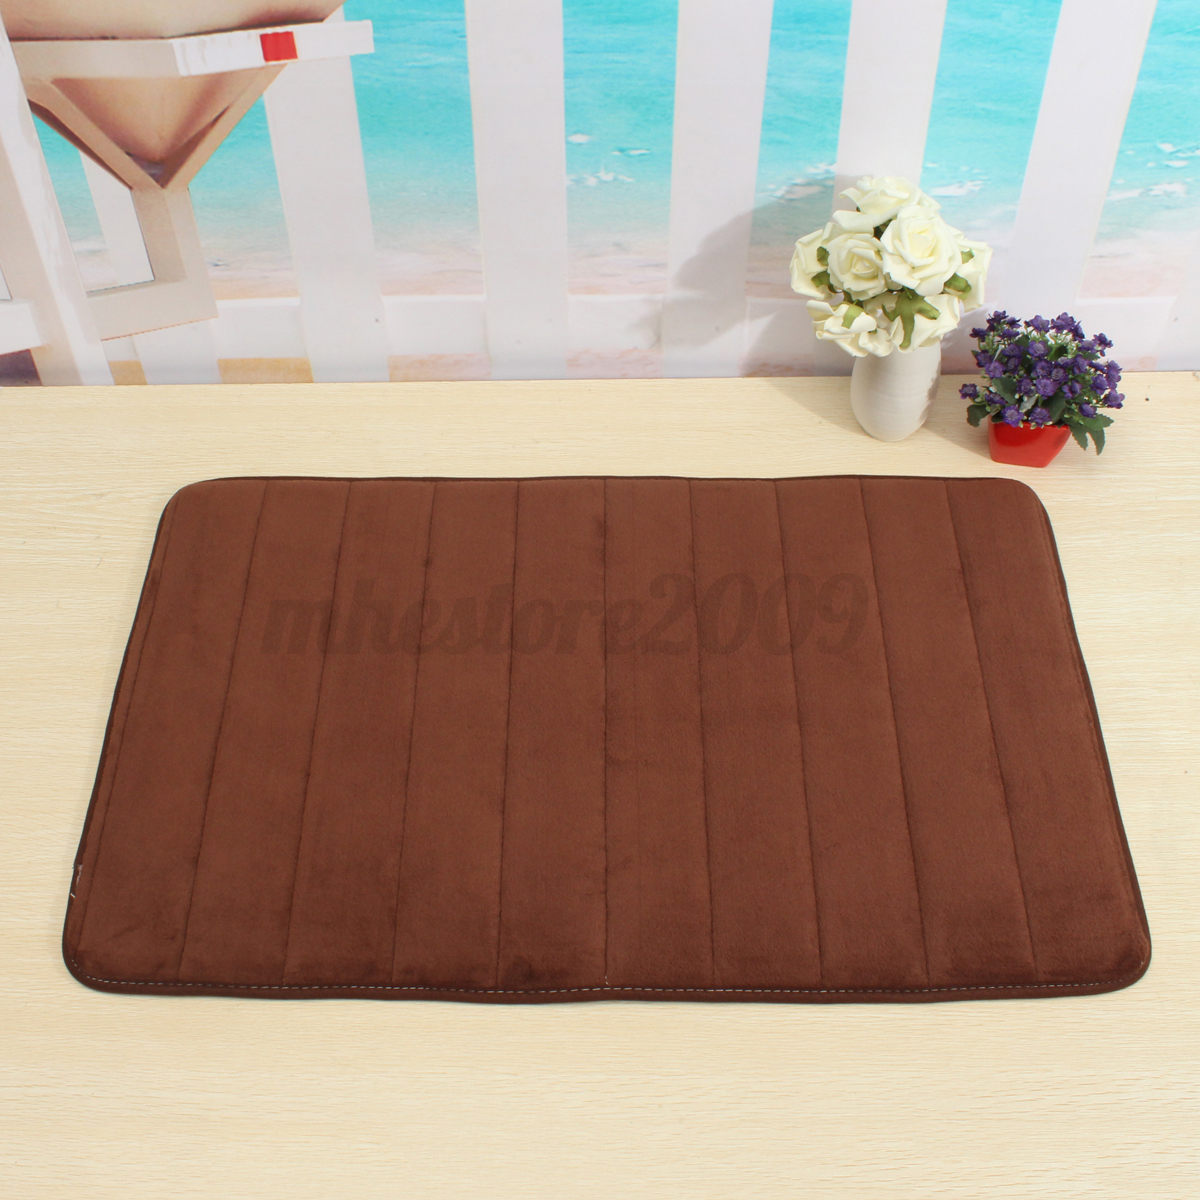 non slip bathroom floor memory foam non slip bathroom bath mat bedroom shower 19749 | AA8292869A378BF68DA956CD03CF93D6C9660B9CC7C79D269AD256469A53C7D2CB5363CC8CD29DC6C616D2C999AA269A269953C8269CC57383A0CECA